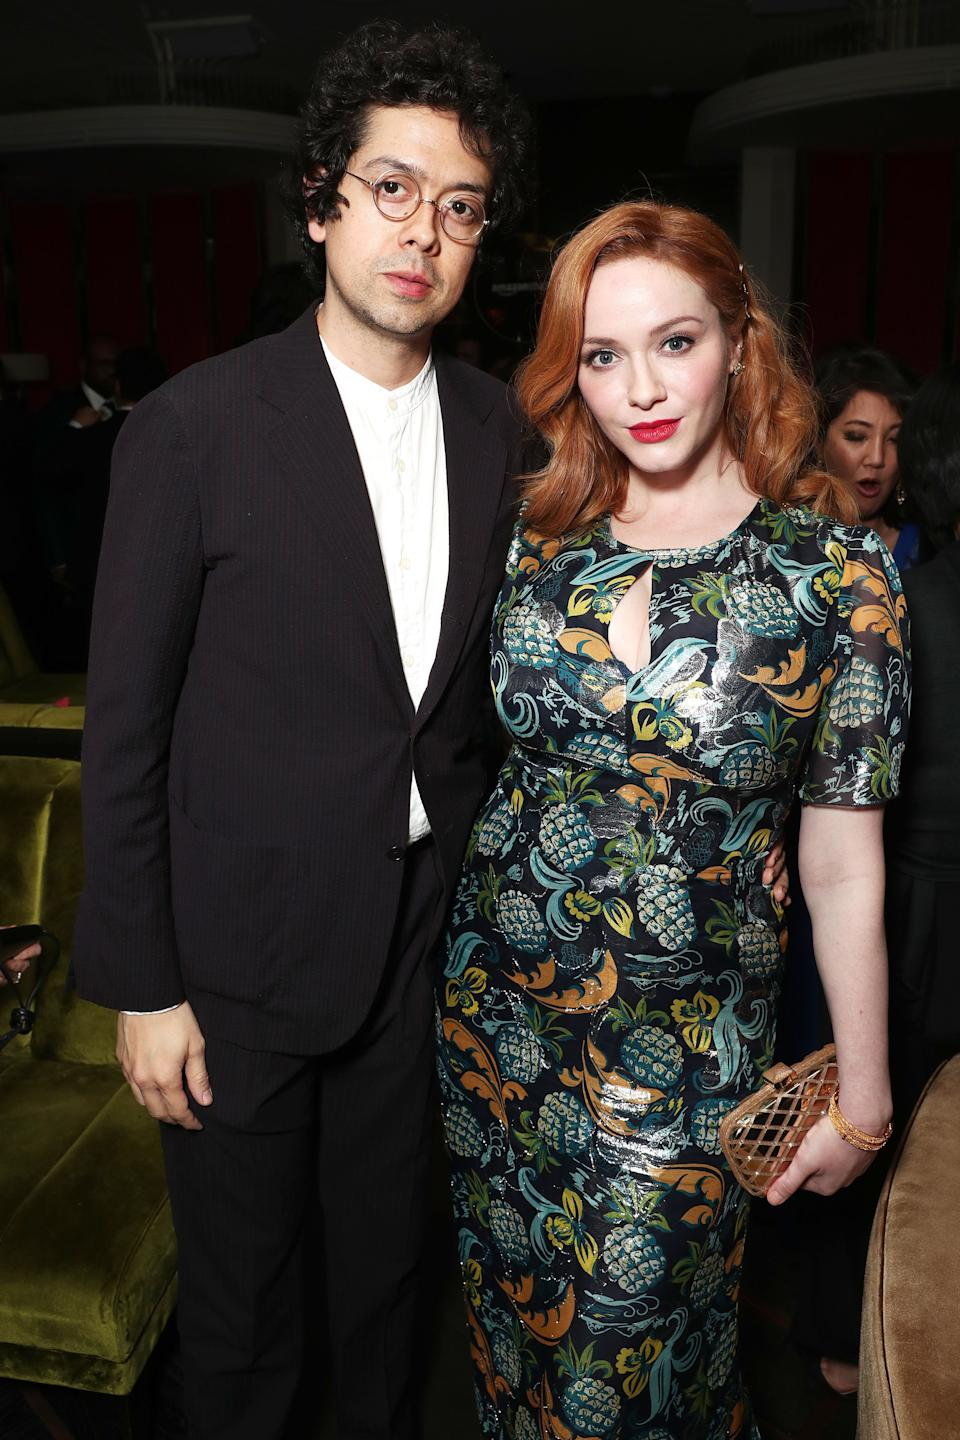 "Low-key couple <a href=""https://www.huffpost.com/life/topic/christina-hendricks"" target=""_blank"" rel=""noopener noreferrer"">Christina Hendricks</a> and fellow actor Geoffrey Arend met in 2006 and married in 2009. <a href=""https://www.huffingtonpost.co.uk/2012/02/01/mad-men-christina-hendricks_n_1247401.html?guccounter=1&guce_referrer=aHR0cHM6Ly93d3cuZ29vZ2xlLmNvbS8&guce_referrer_sig=AQAAADF0xsV_0t59tR45RY8pv-r6wS7_lRFr7h-LgwWbUVx3pVUobeW-gA69kk-3cNo9HmA3C8tKnvPPXENp_6fuP5isw7LemWVi6qTRjBYtP43_57oRaojs6UqbI2kBvztGgPwTmUdxO3_xaZDH36VSuqfVAFk6m3C6B0SFabt9bki4"" rel=""external"">Hendricks told Cosmopolitan</a> that her ""Mad Men"" co-star, Vincent Kartheiser, introduced him.<br /><br><br><br />""Vinnie invited several friends to a place in L.A. called the Magic Castle – me being one. Geoffrey walked in and I was like, 'Who is this guy?' He had amazing hair and was all dishevelled – he was running late and everyone was waiting for him,"" she said. ""He just came in with this very high energy."""